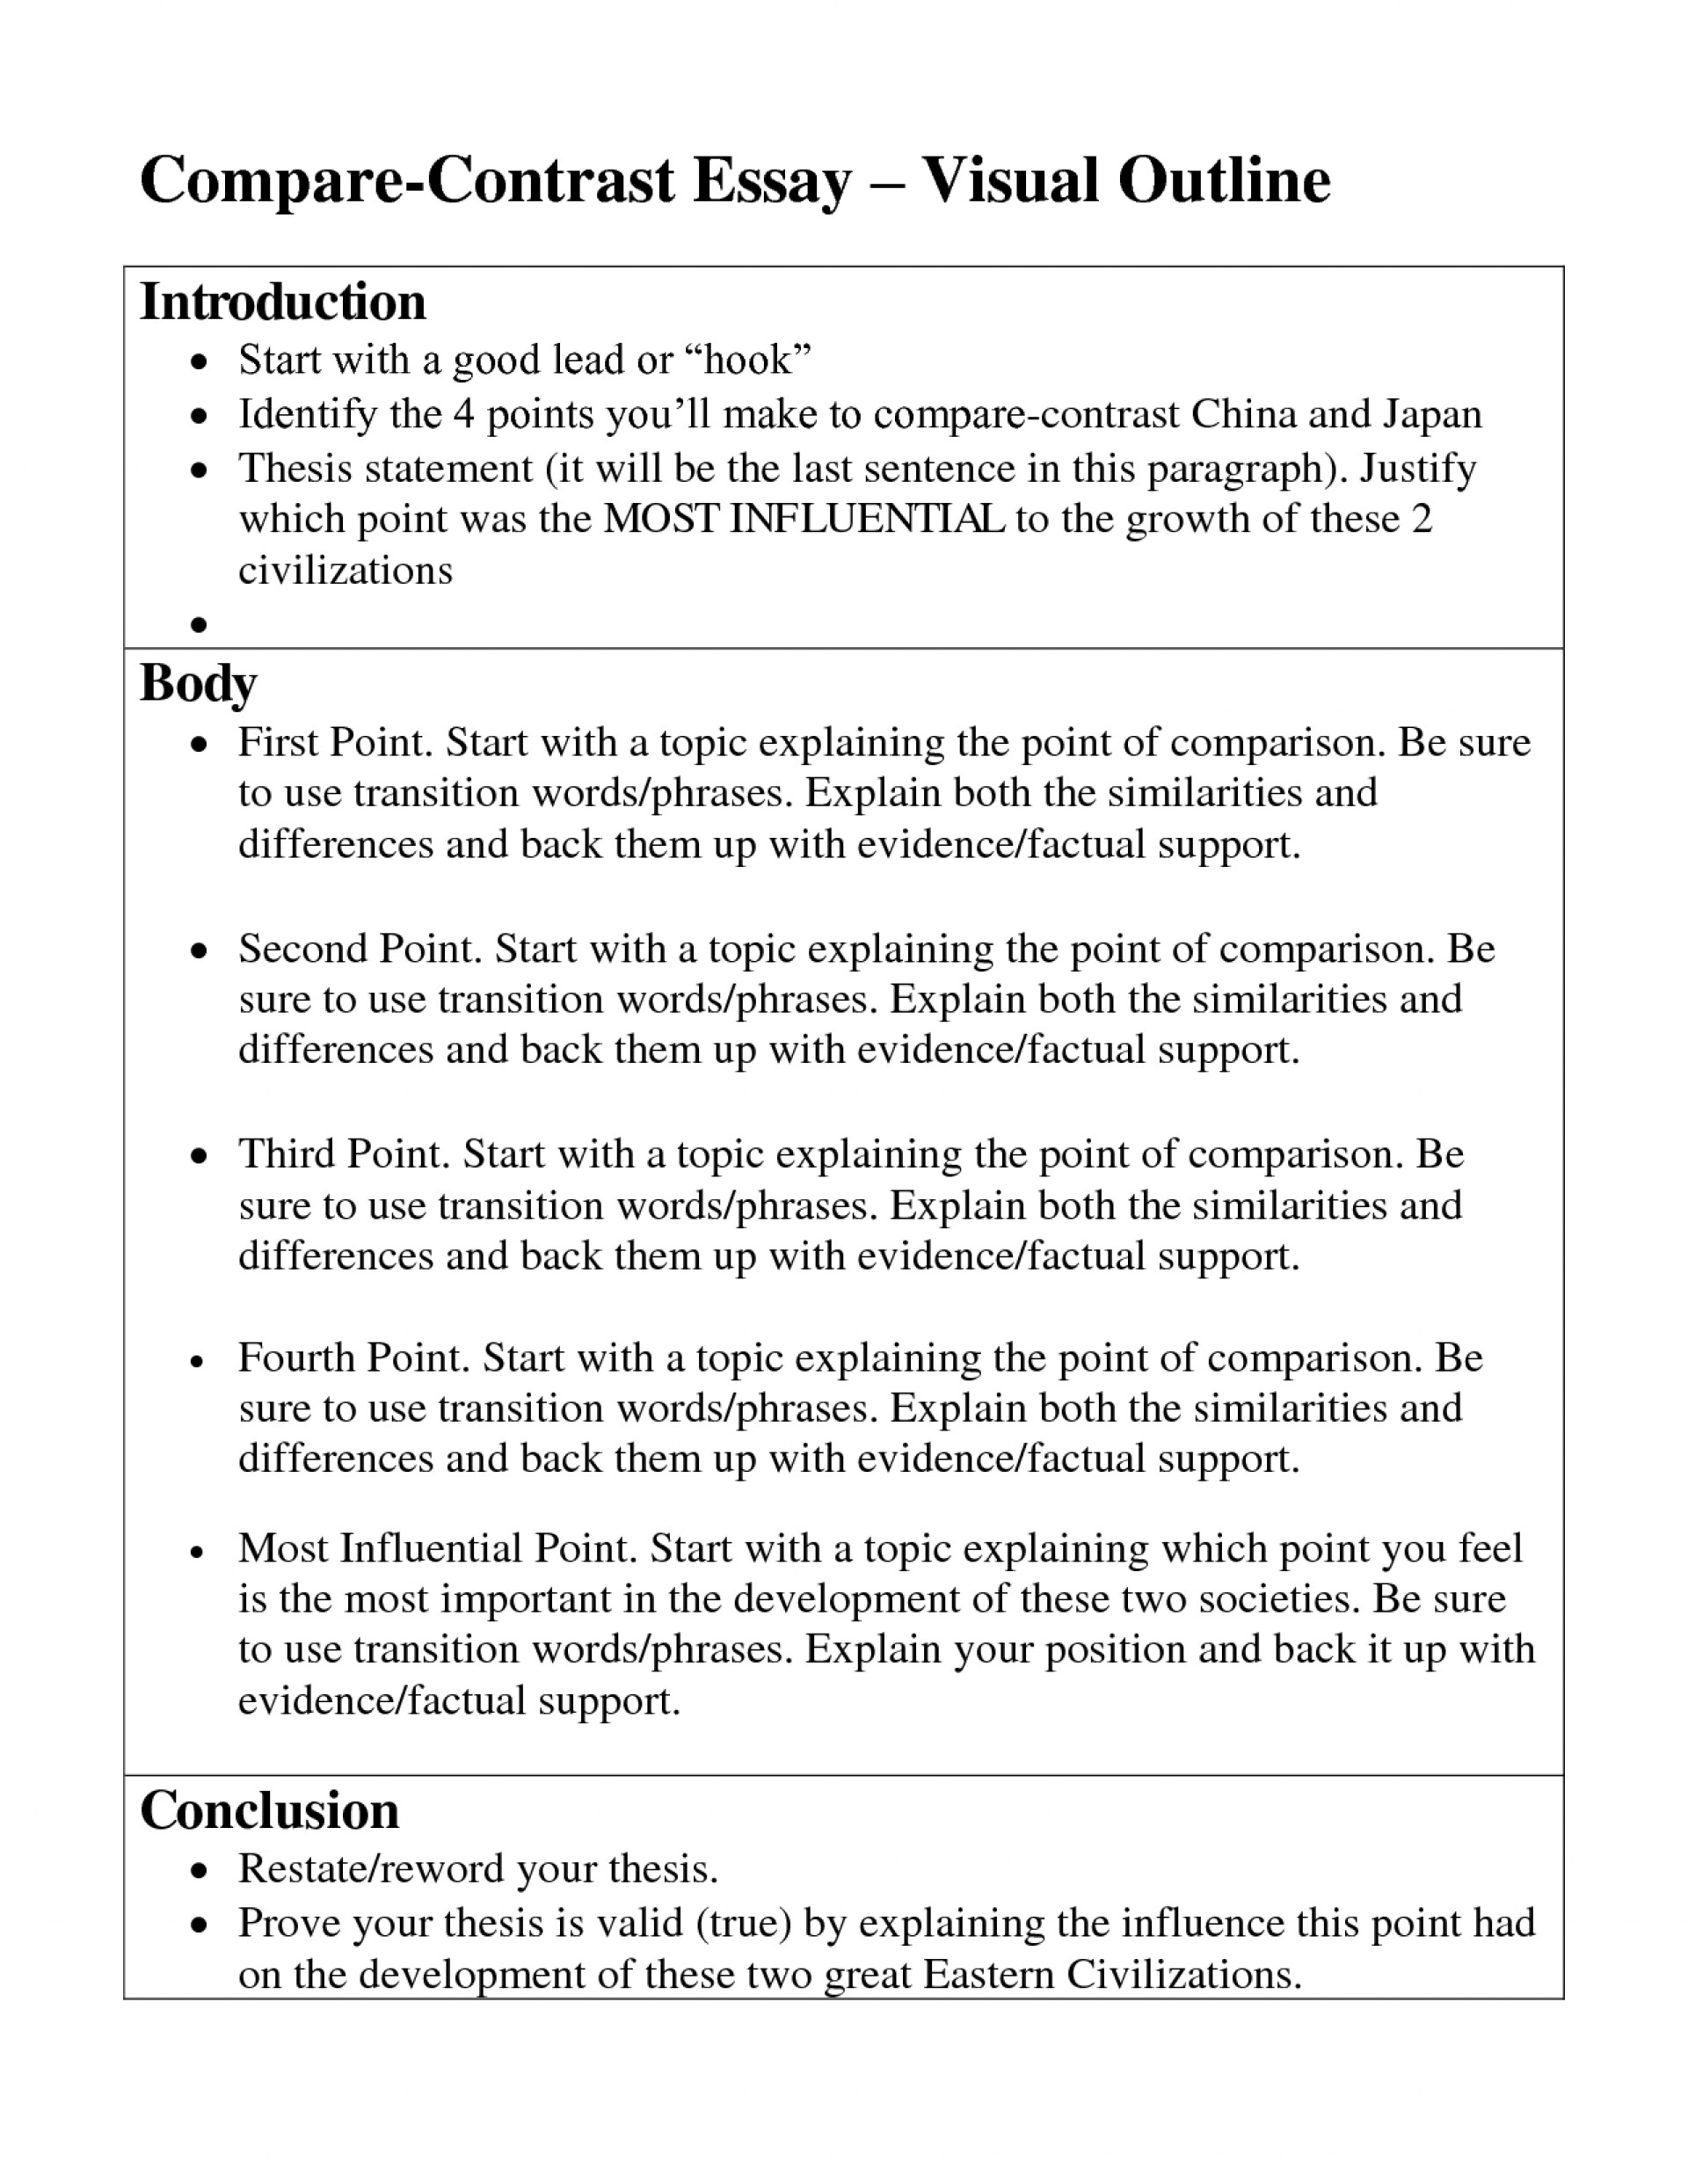 005 Comparison And Contrast Essays Frightening Essay Examples Free Compare Pdf College 1920